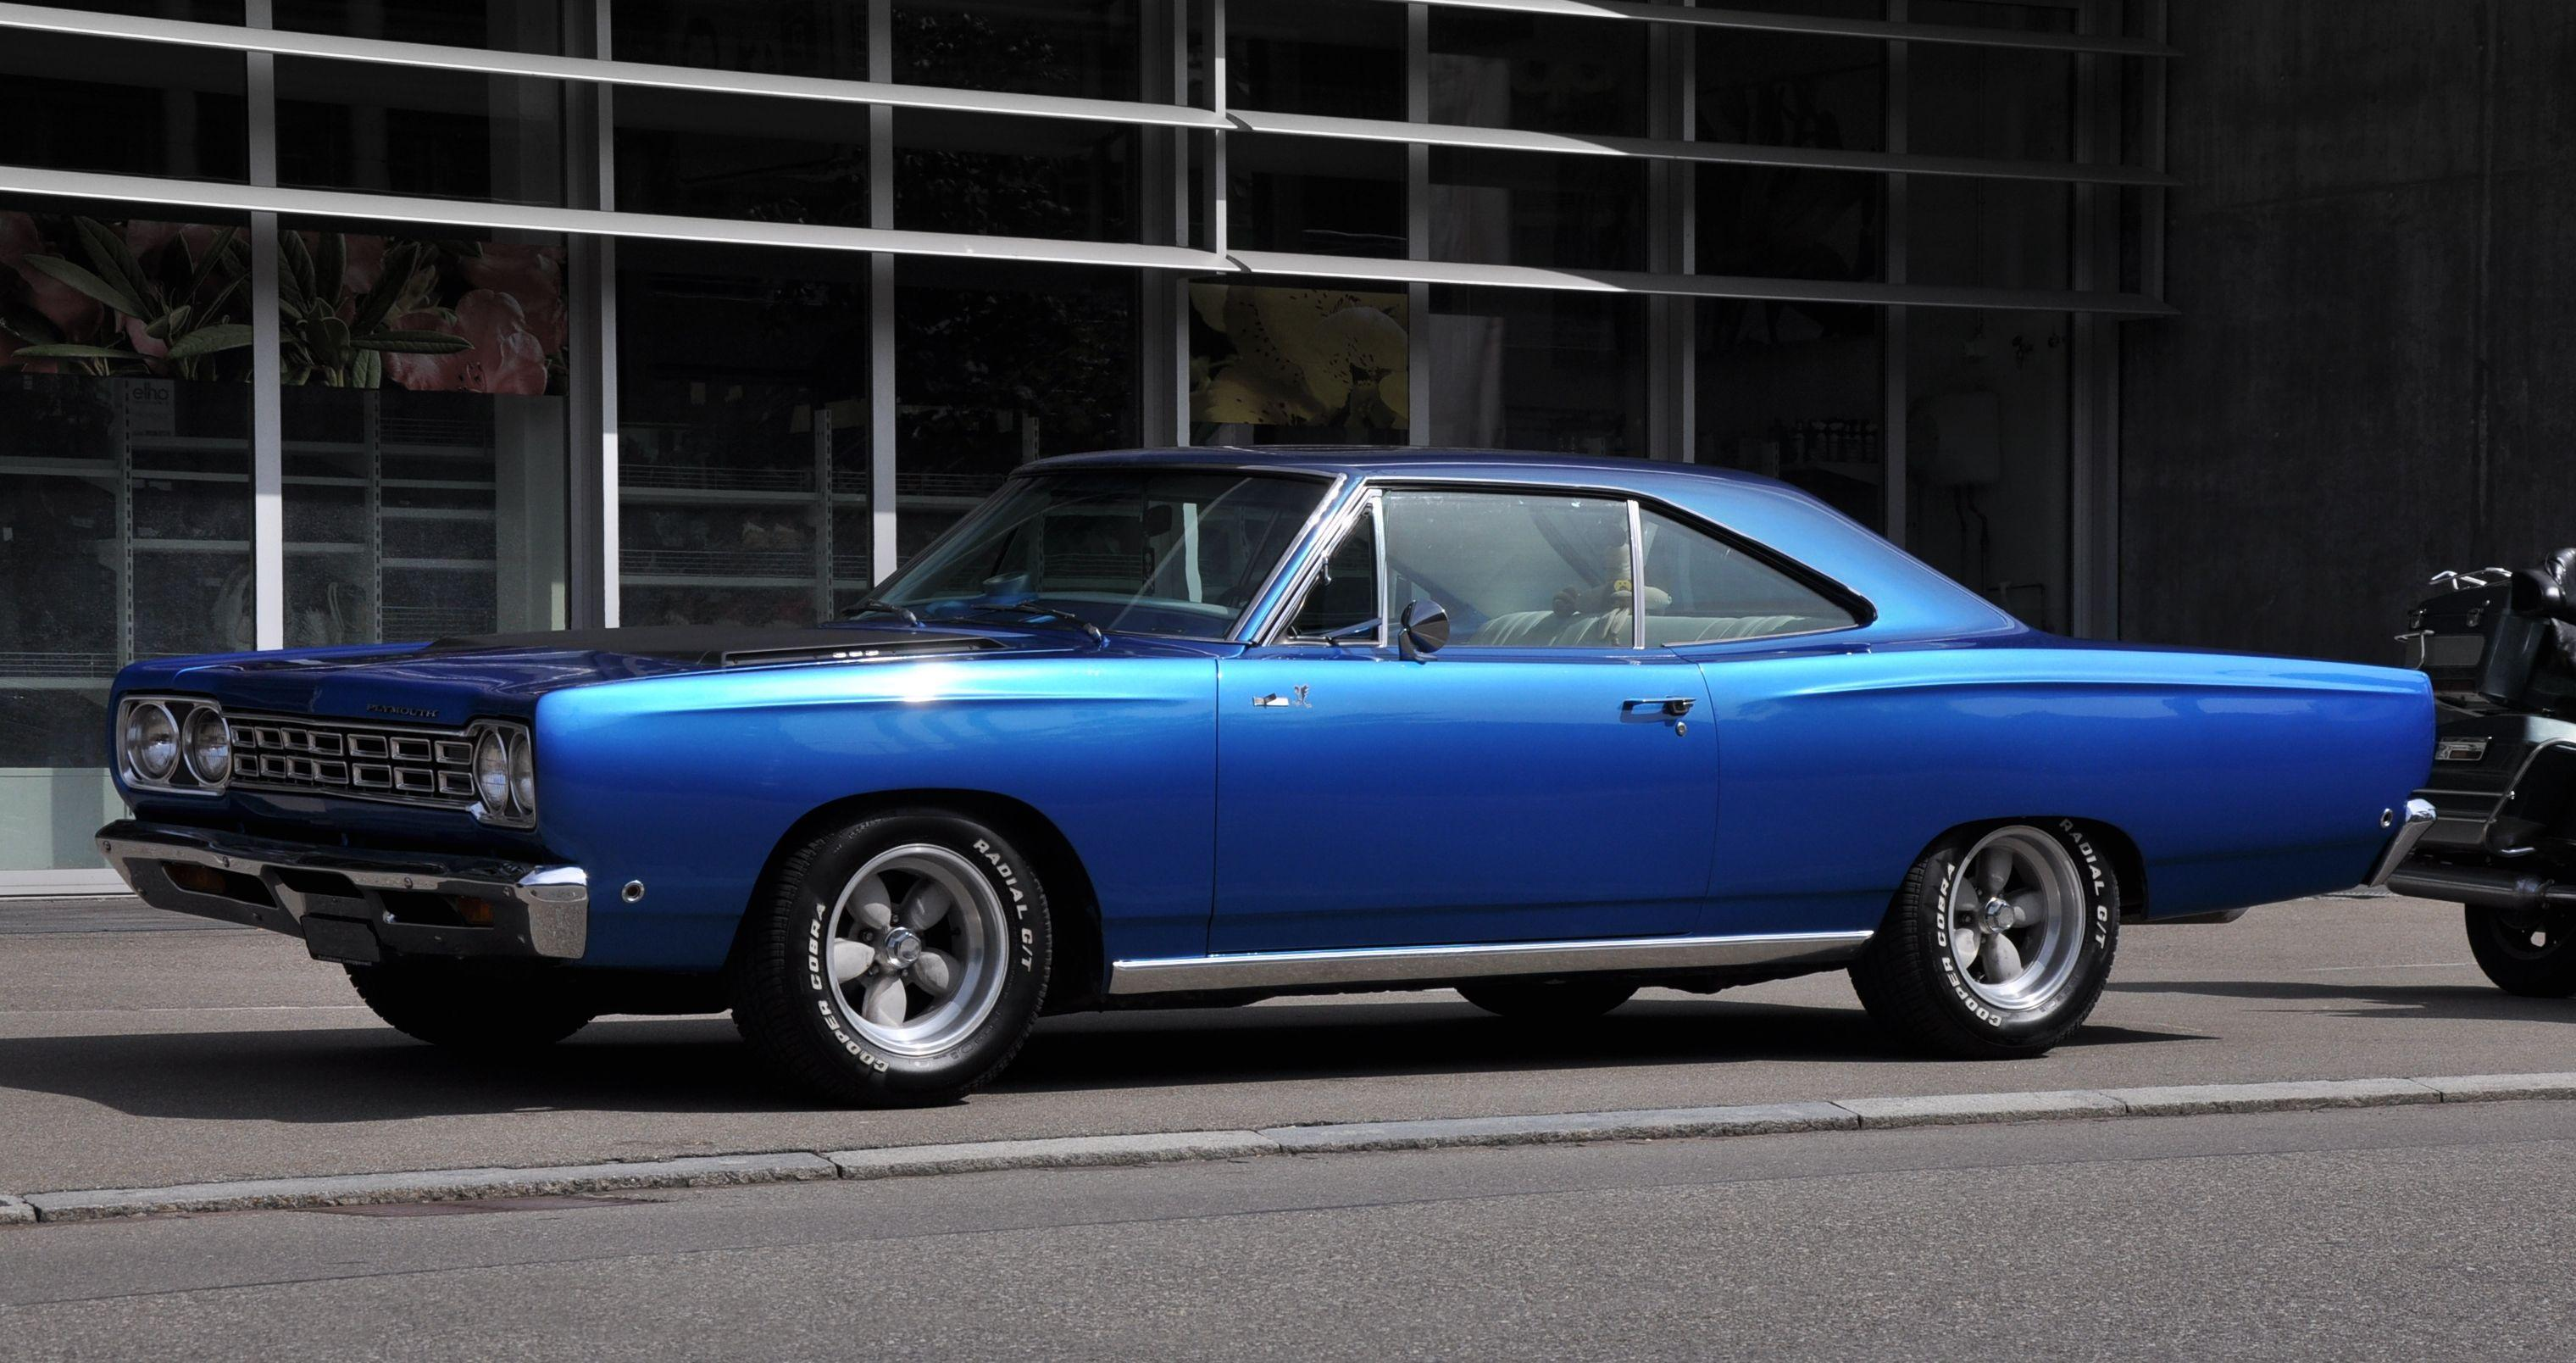 Plymouth Roadrunner Photos and Wallpapers | TrueAutoSite